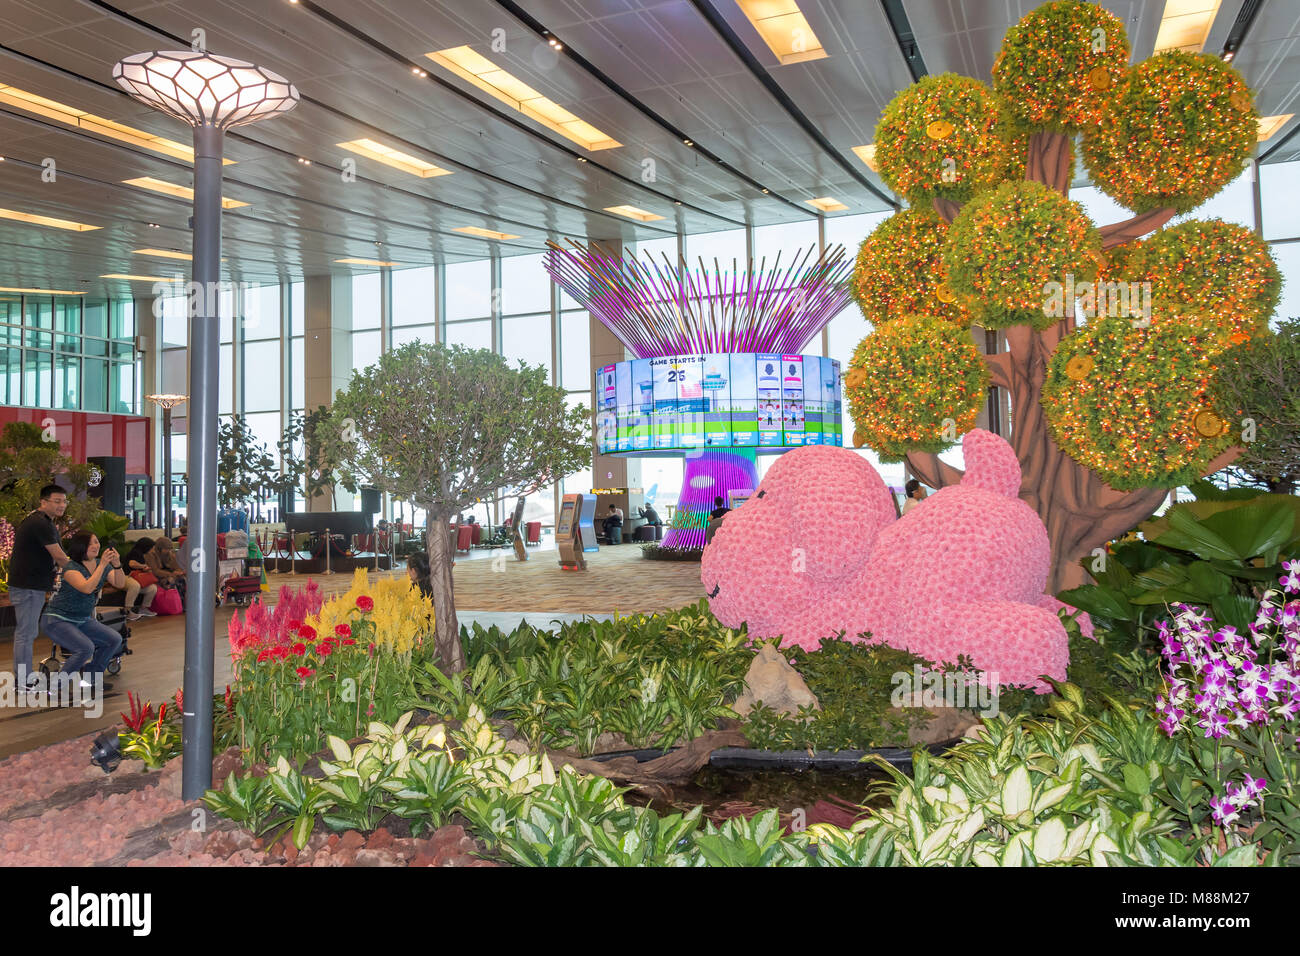 The Social Tree interactive installation and garden in Transit Hall, Terminal 1, Singapore Changi Airport, Changi, - Stock Image